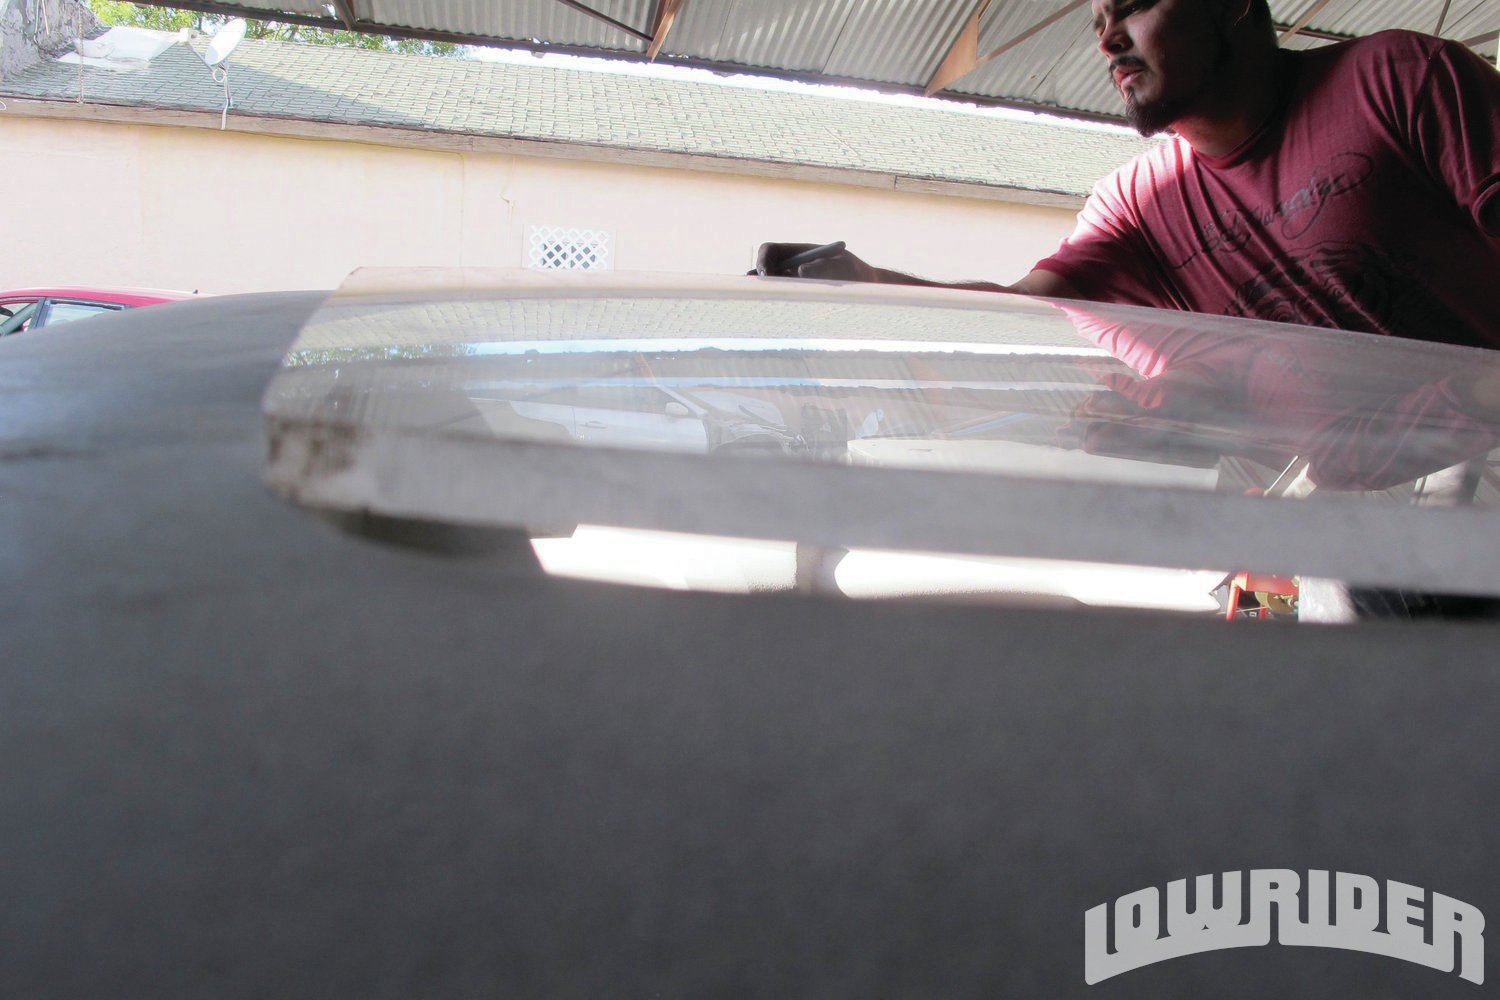 <strong>6</strong>. The new acrylic glass is 3/8-inch thick, and should work well on the roof, once it is fitted properly.